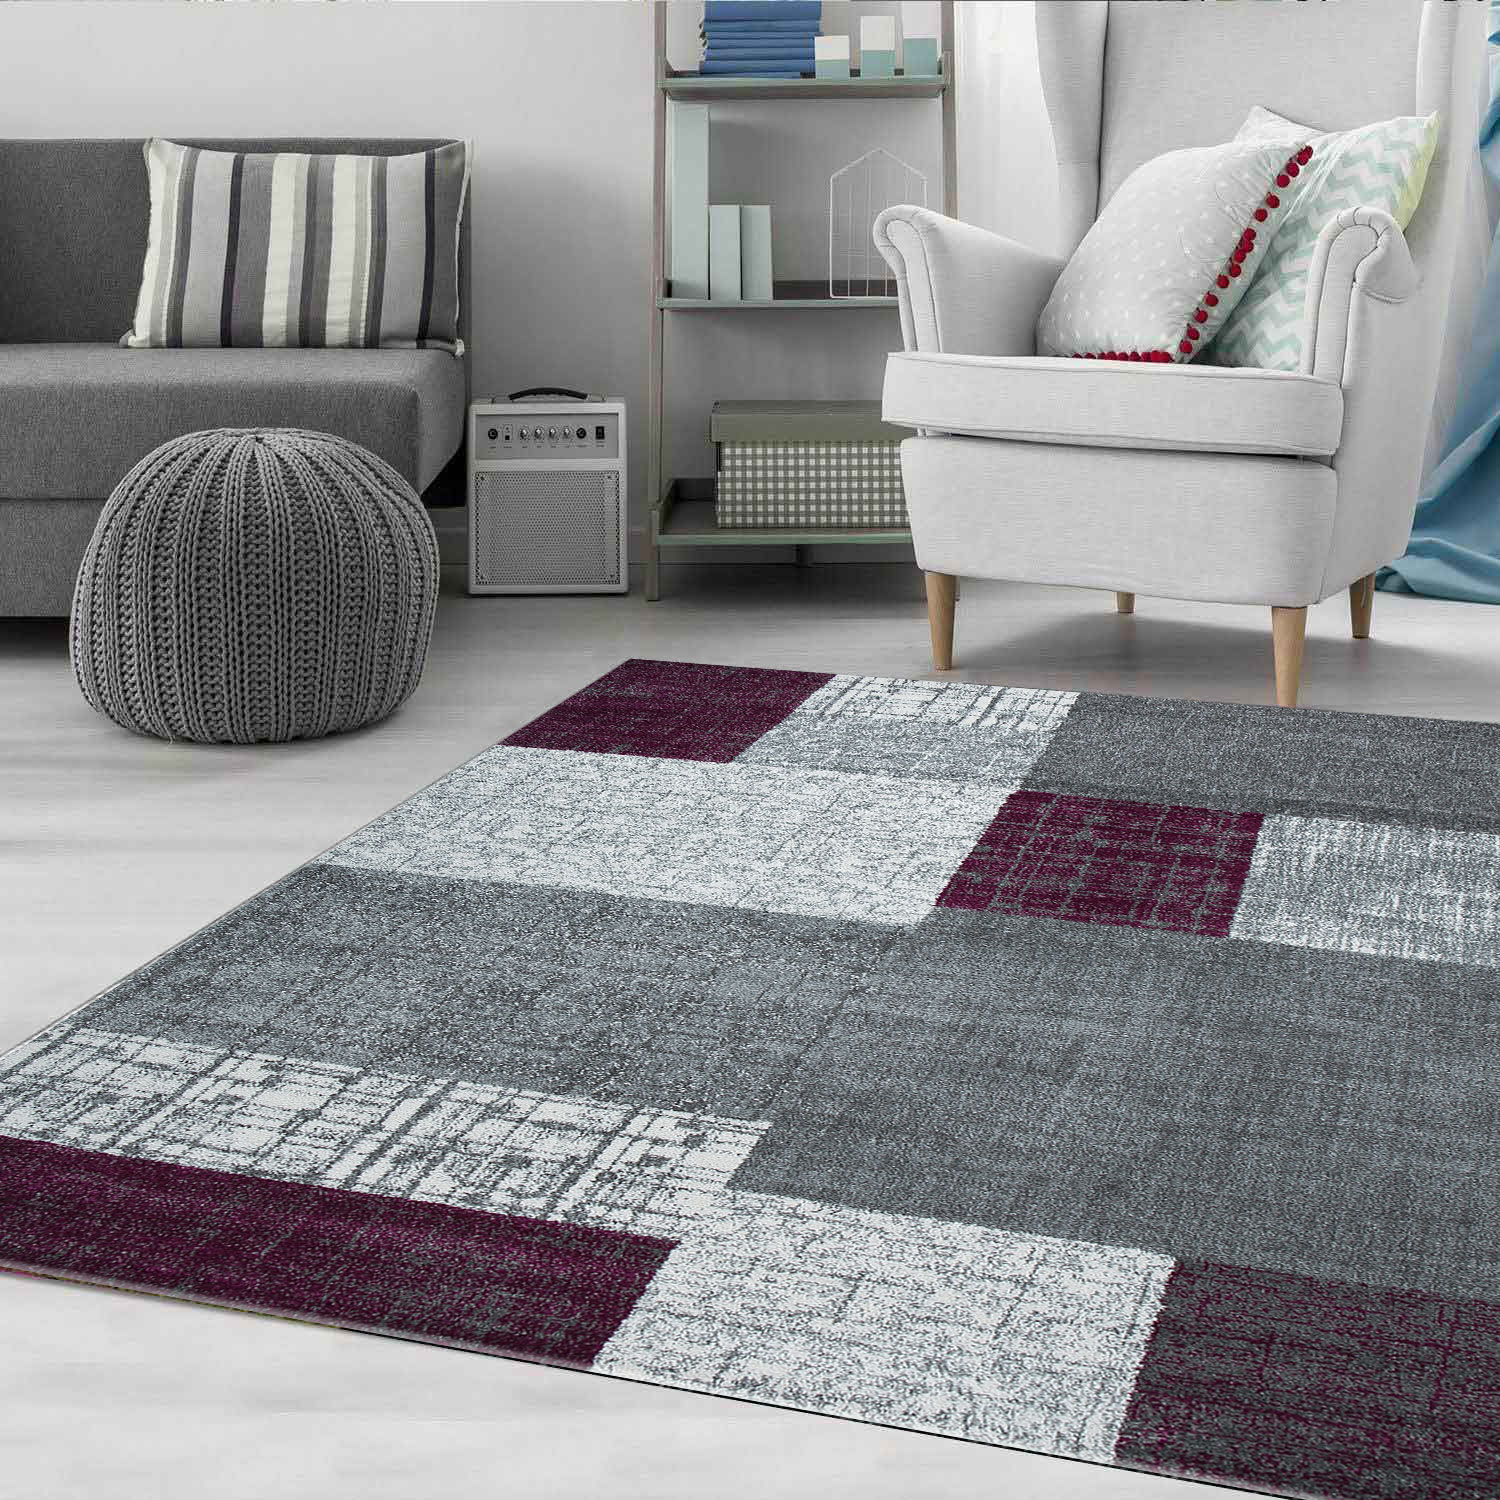 Living Room Rug Modern Rug With Checkered Patterns Short Pile Purple Grey White Colors R7778 Ceres Webshop